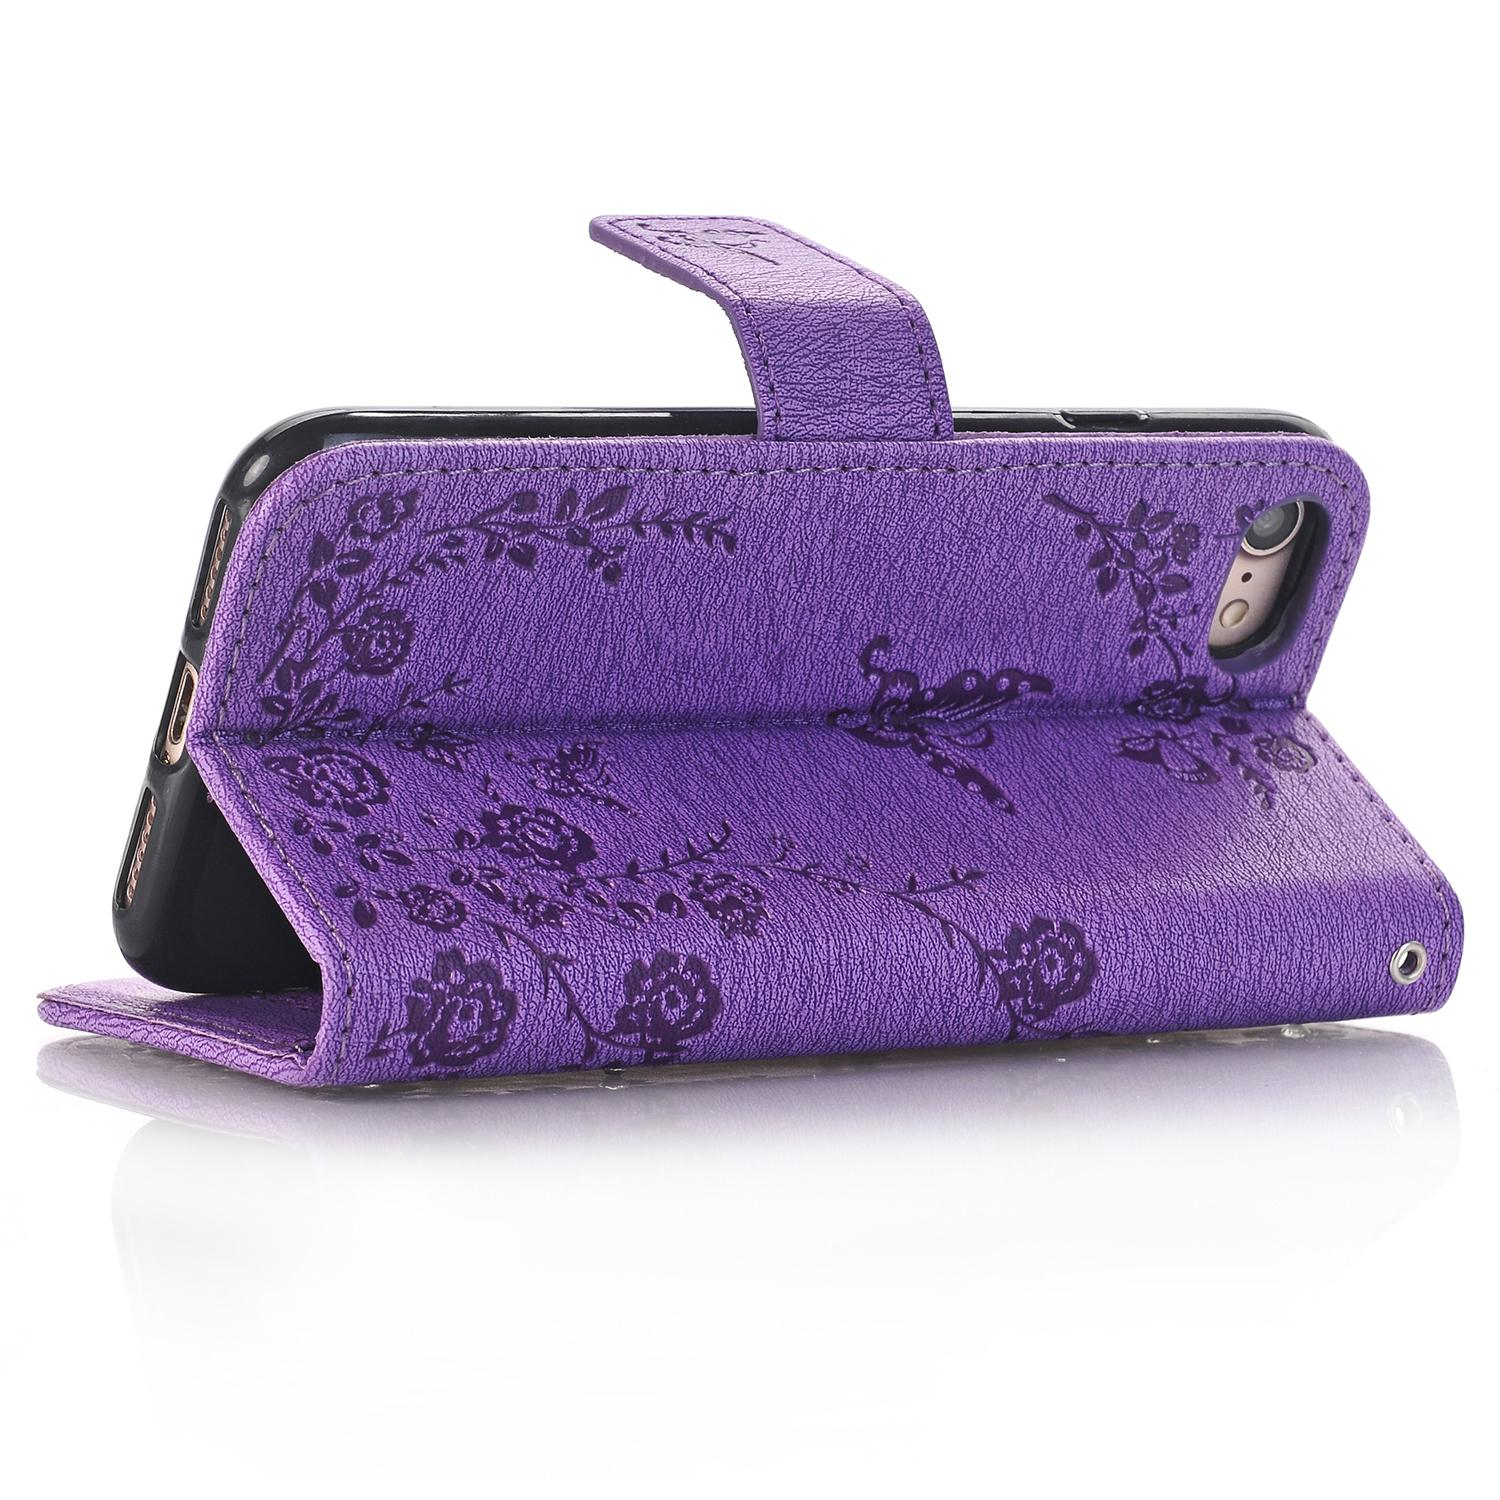 Leather Case Colourful Cover Card Slot Smartphone Cover with Butterfly Pattern For Iphone 5S 6S/6S plus/7 Plus/8 Iphone X 1pc